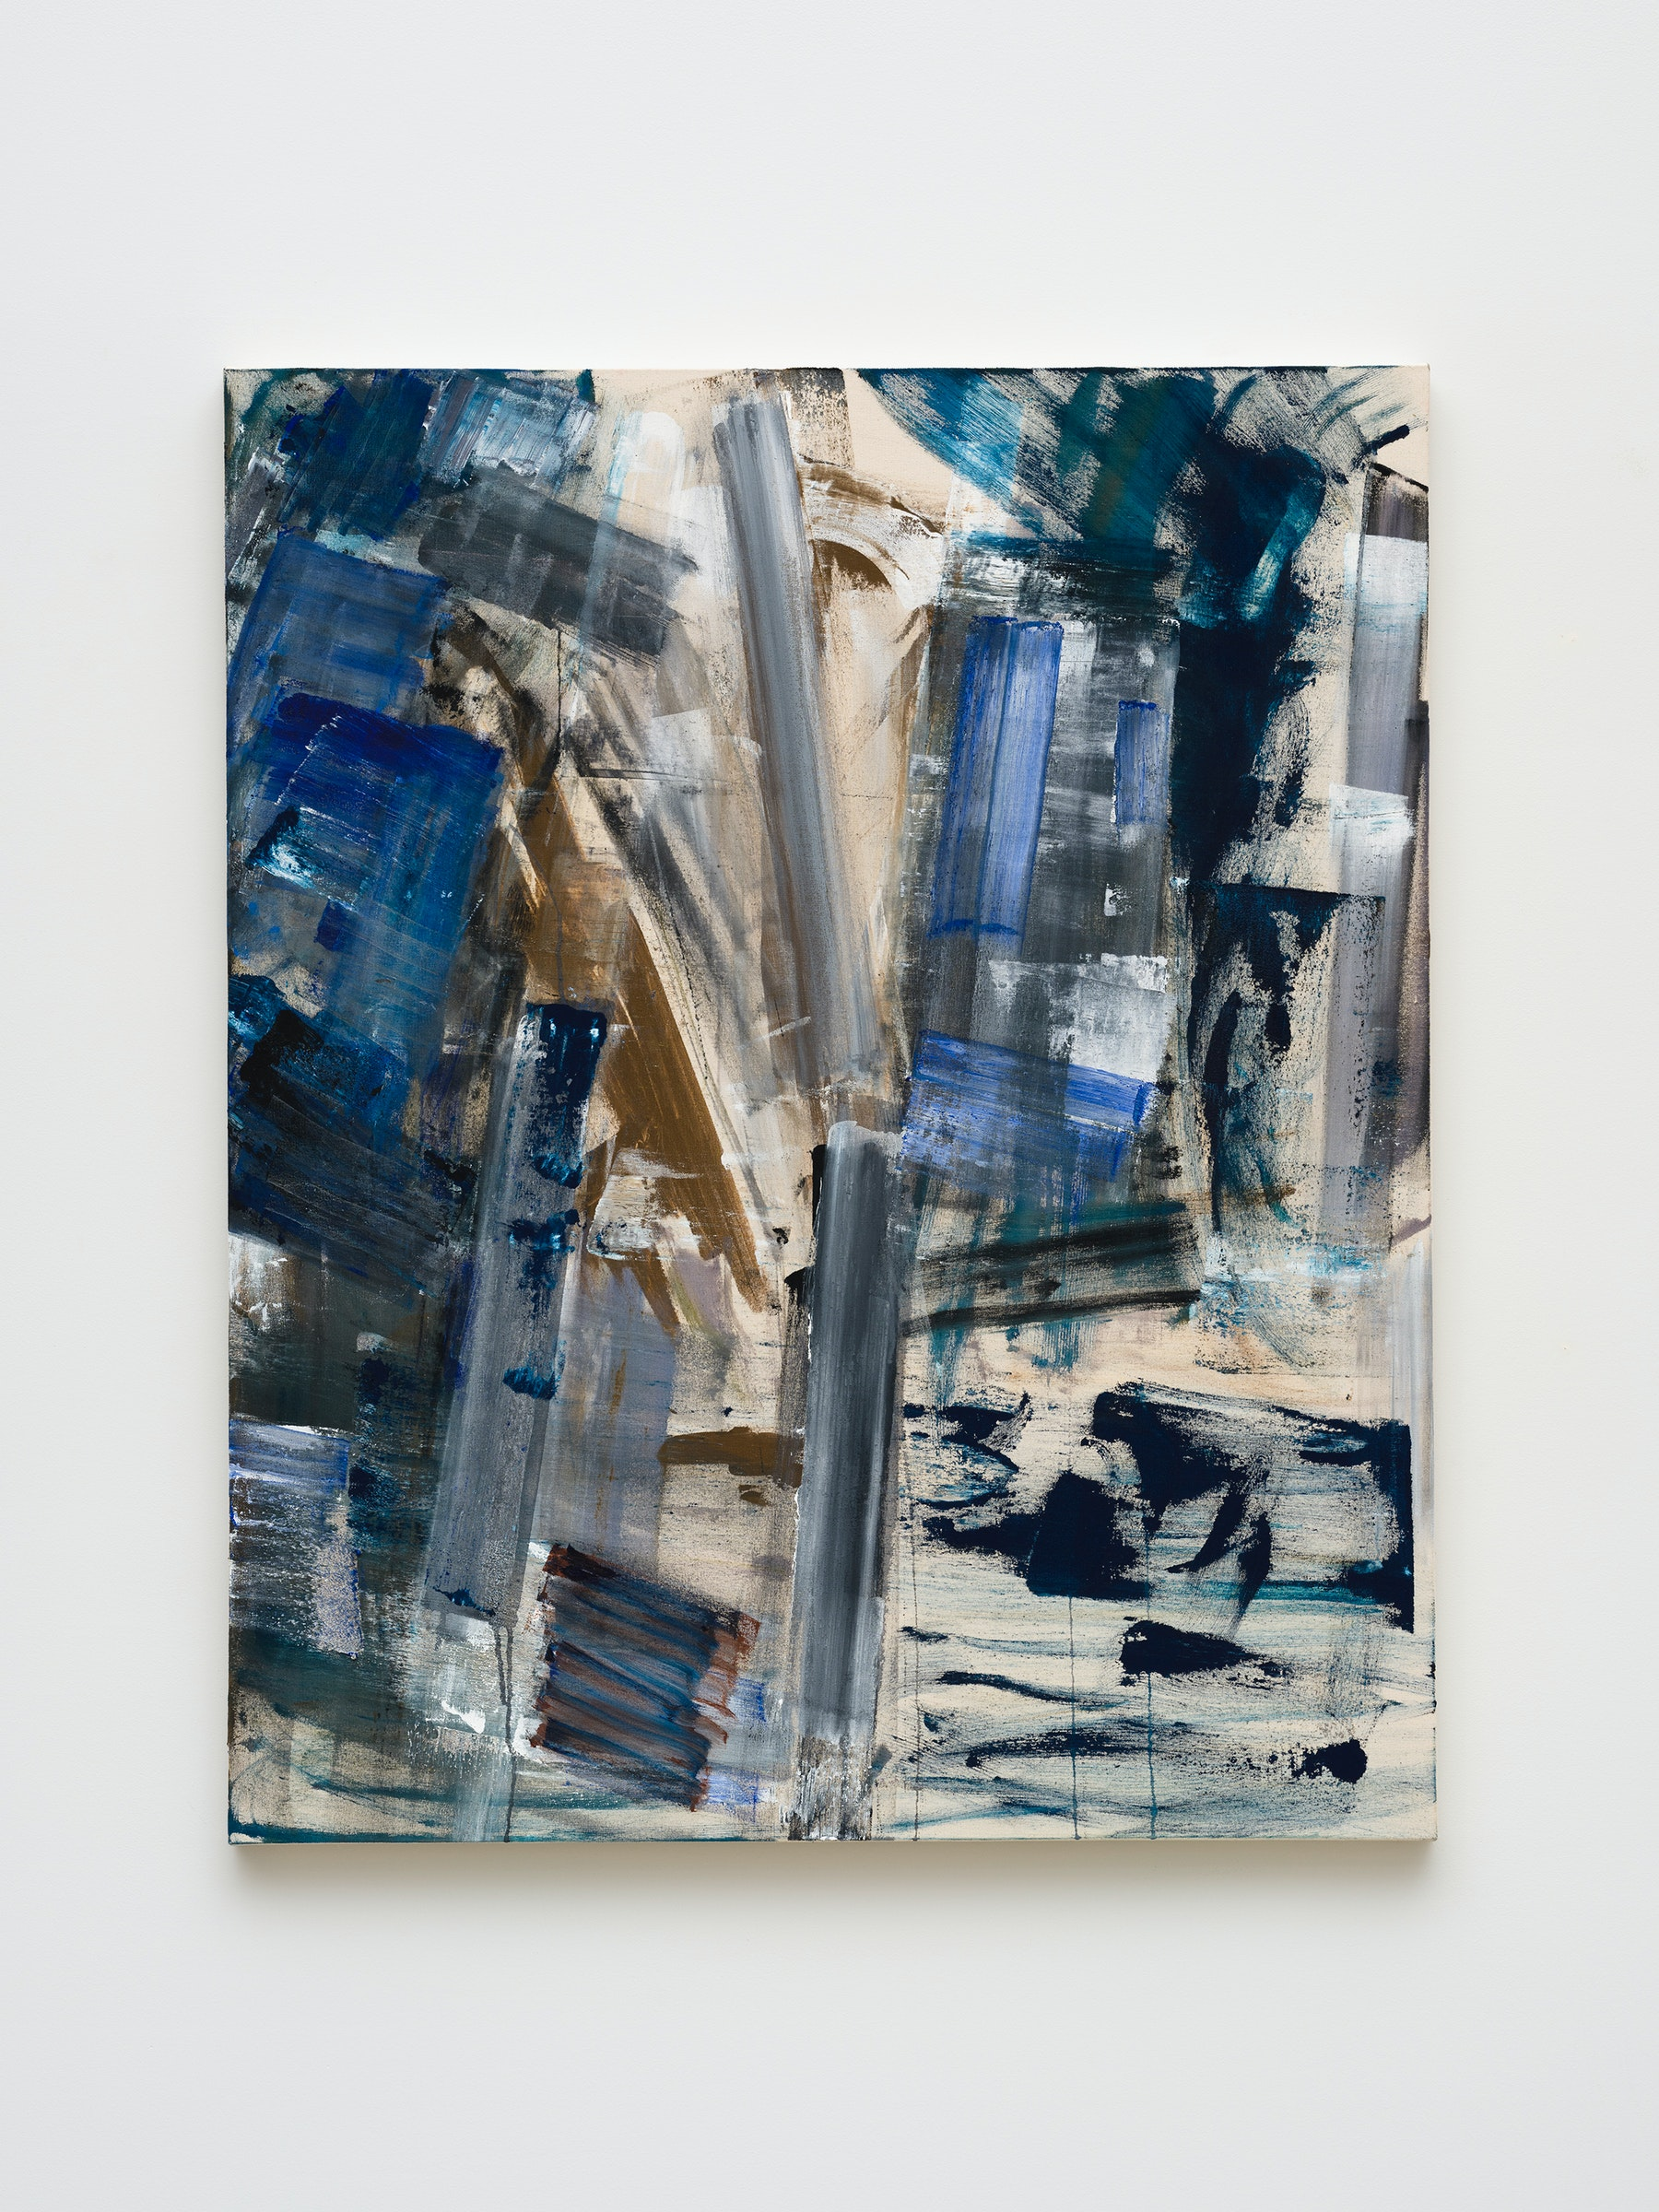 """Louise Fishman """"PROUN,"""" 2020 Acrylic on canvas 55"""" x 45"""" [HxW] (139.7 x 114.3 cm) Inventory #FIS181 Courtesy of the artist and Vielmetter Los Angeles Photo credit: Jeff Mclane"""